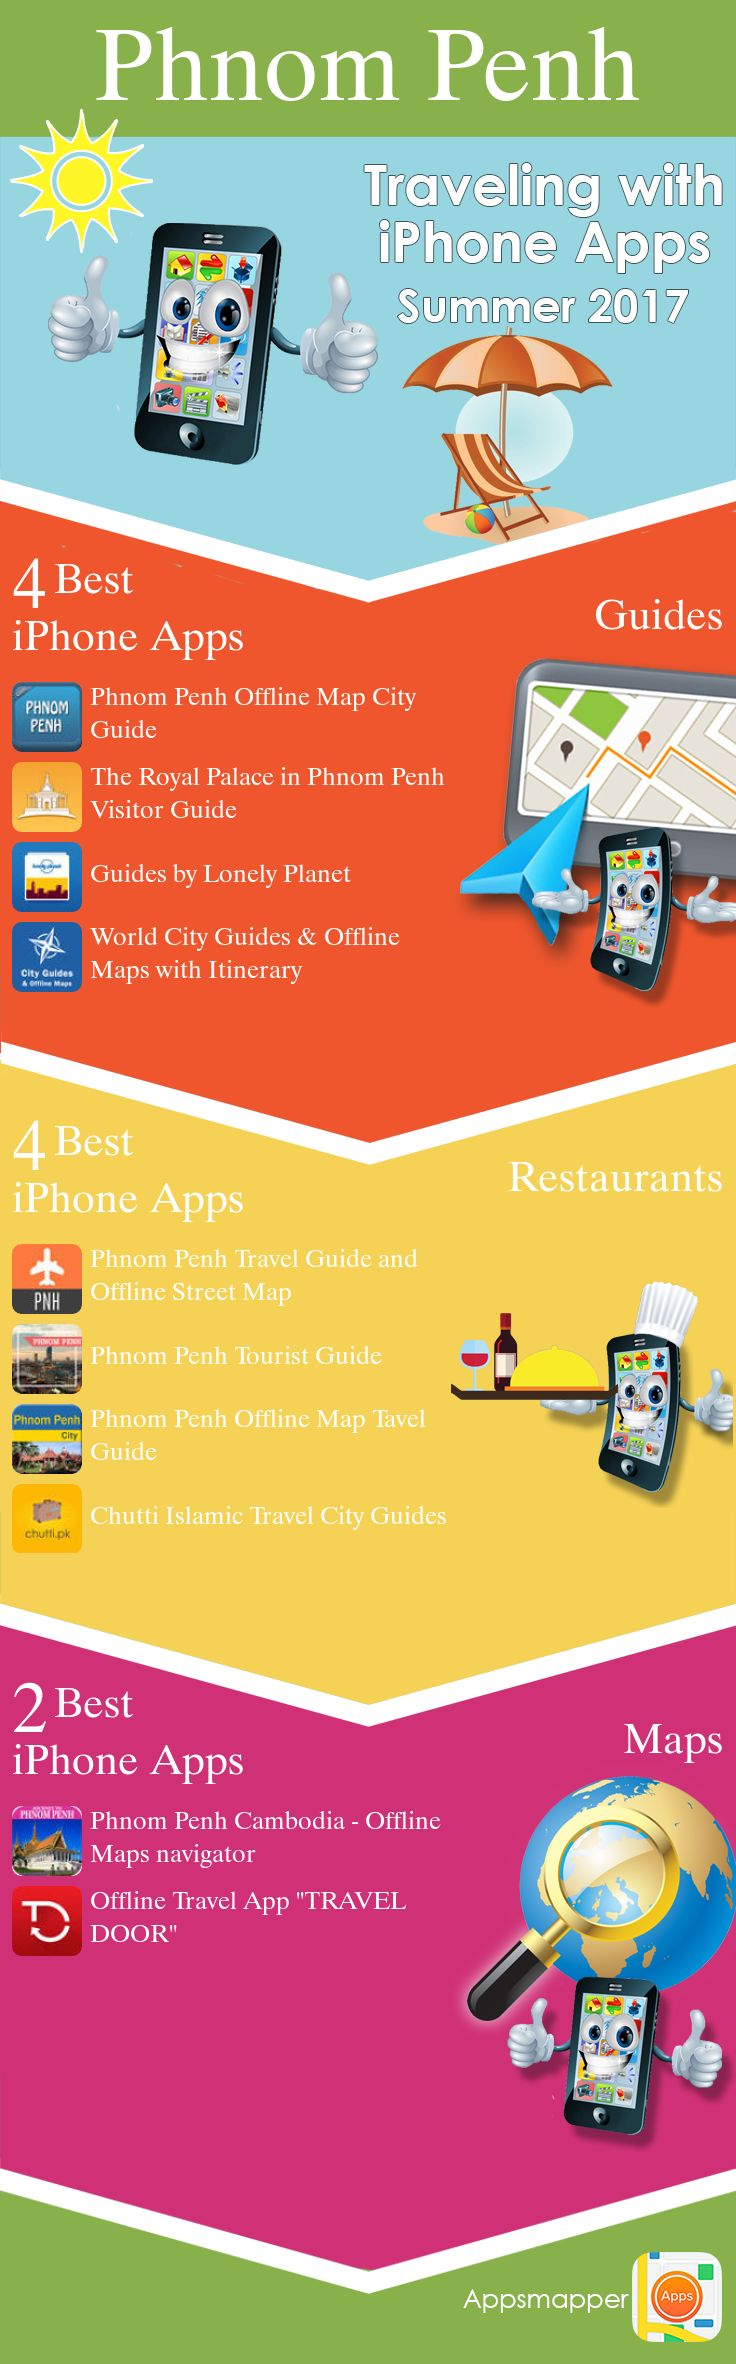 Phnom Penh iPhone apps: Travel Guides, Maps, Transportation, Biking, Museums, Parking, Sport and apps for Students.